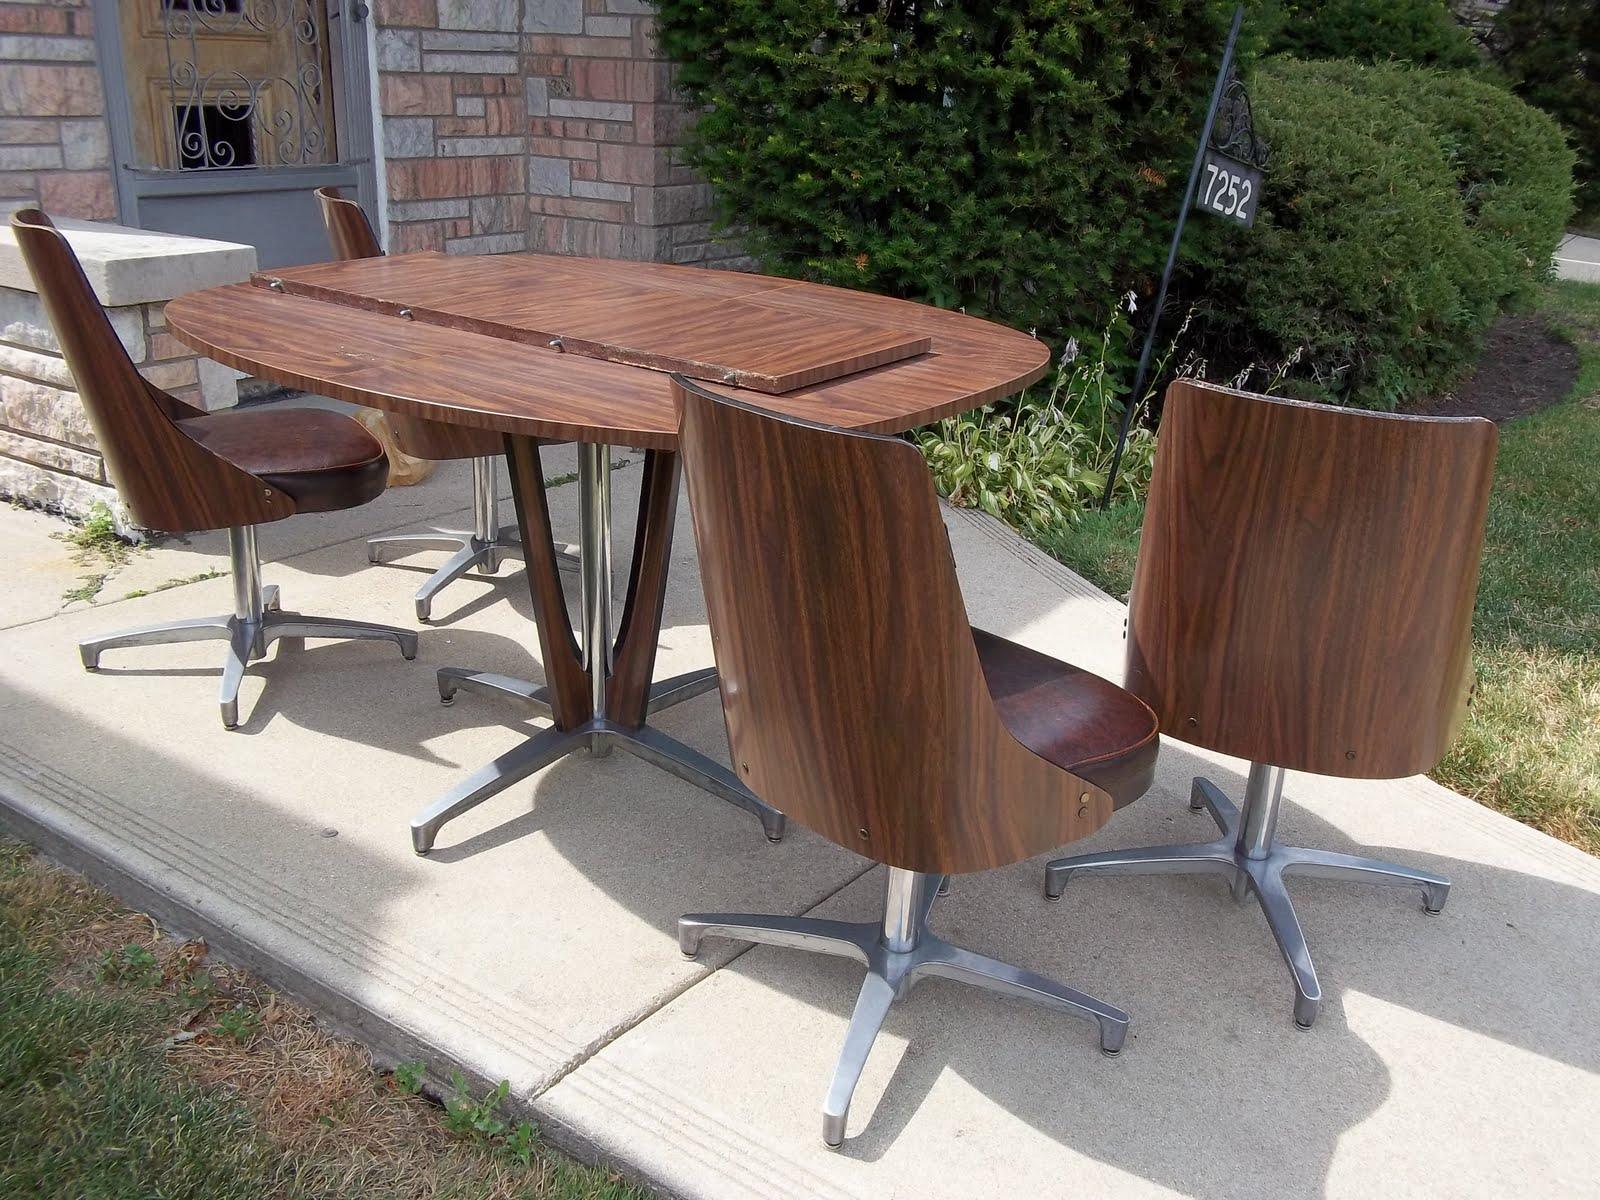 Chromcraft Mid Century Dining Room Kitchen Table Set With 4 Chairs   SOLD